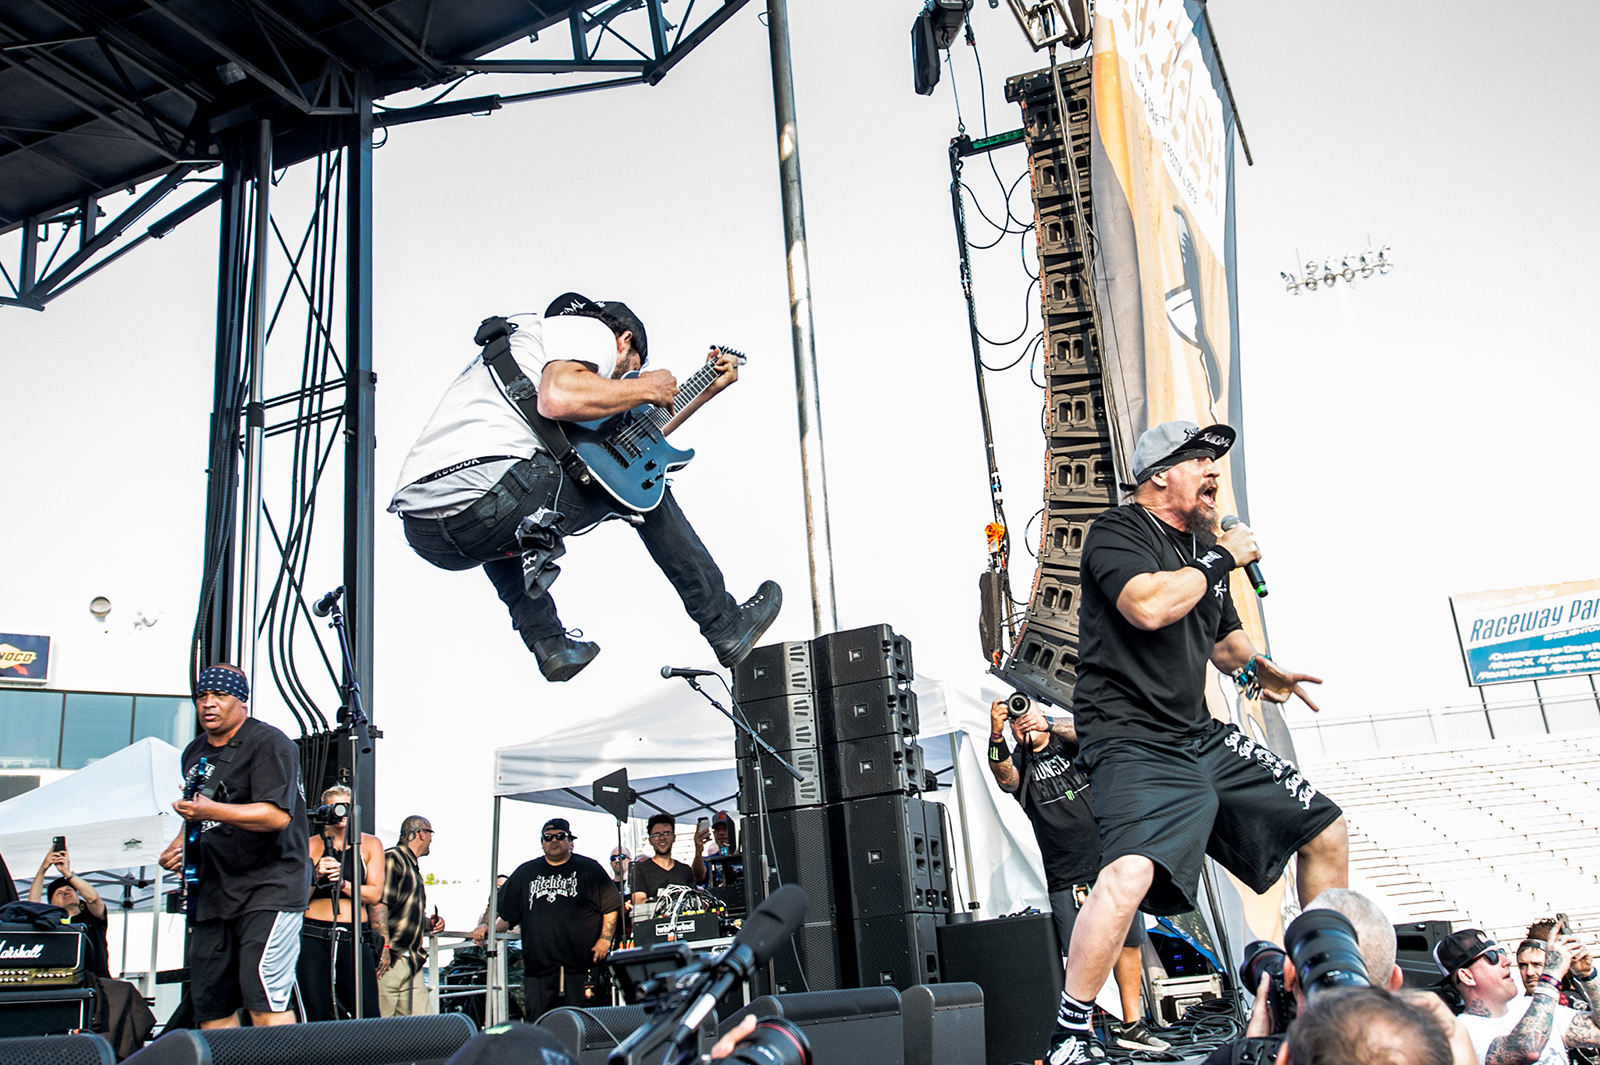 Suicidal Tendencies at The Bash: See Wild Photos of Mike Muir and Co. in Jersey